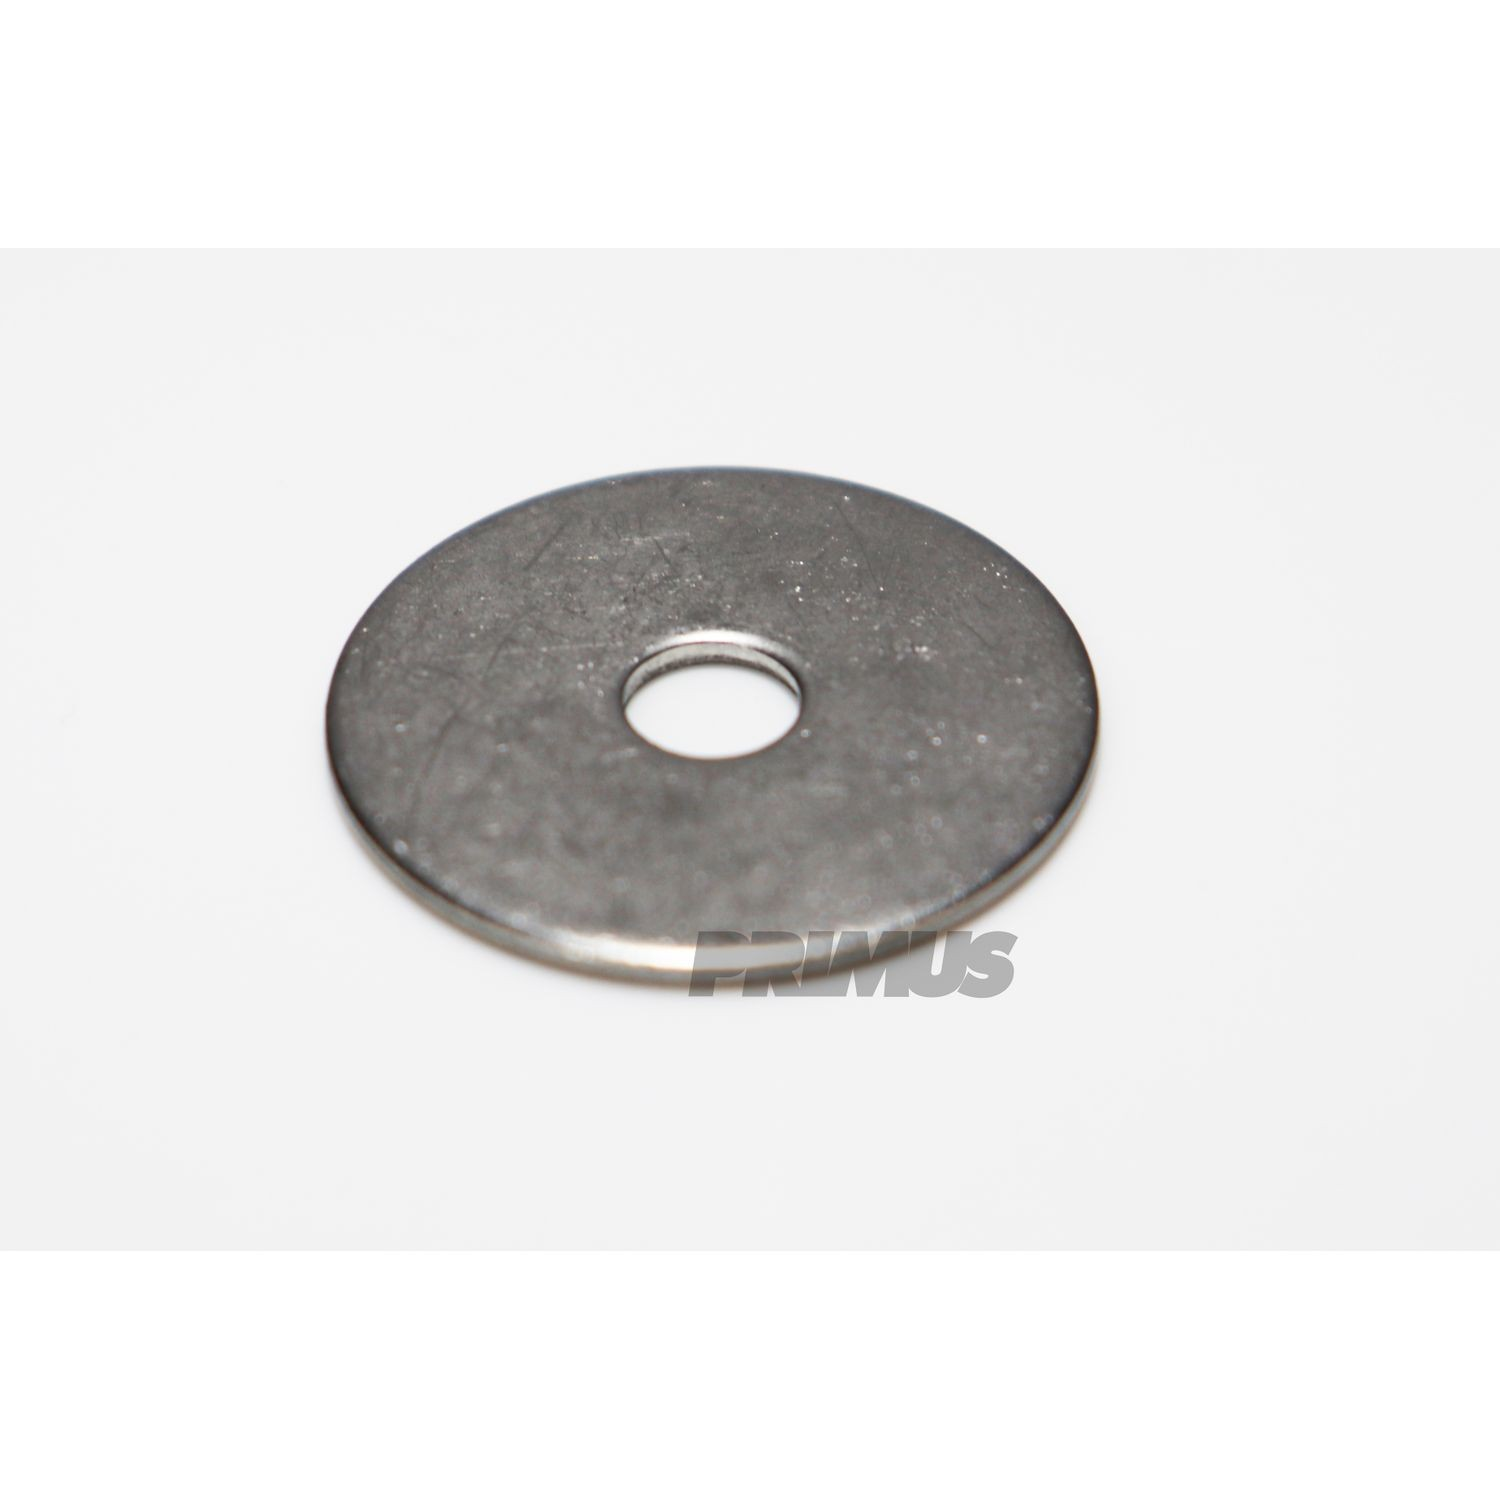 "1/4"" X 1-1/4"" STAINLESS STEEL FENDER WASHER"